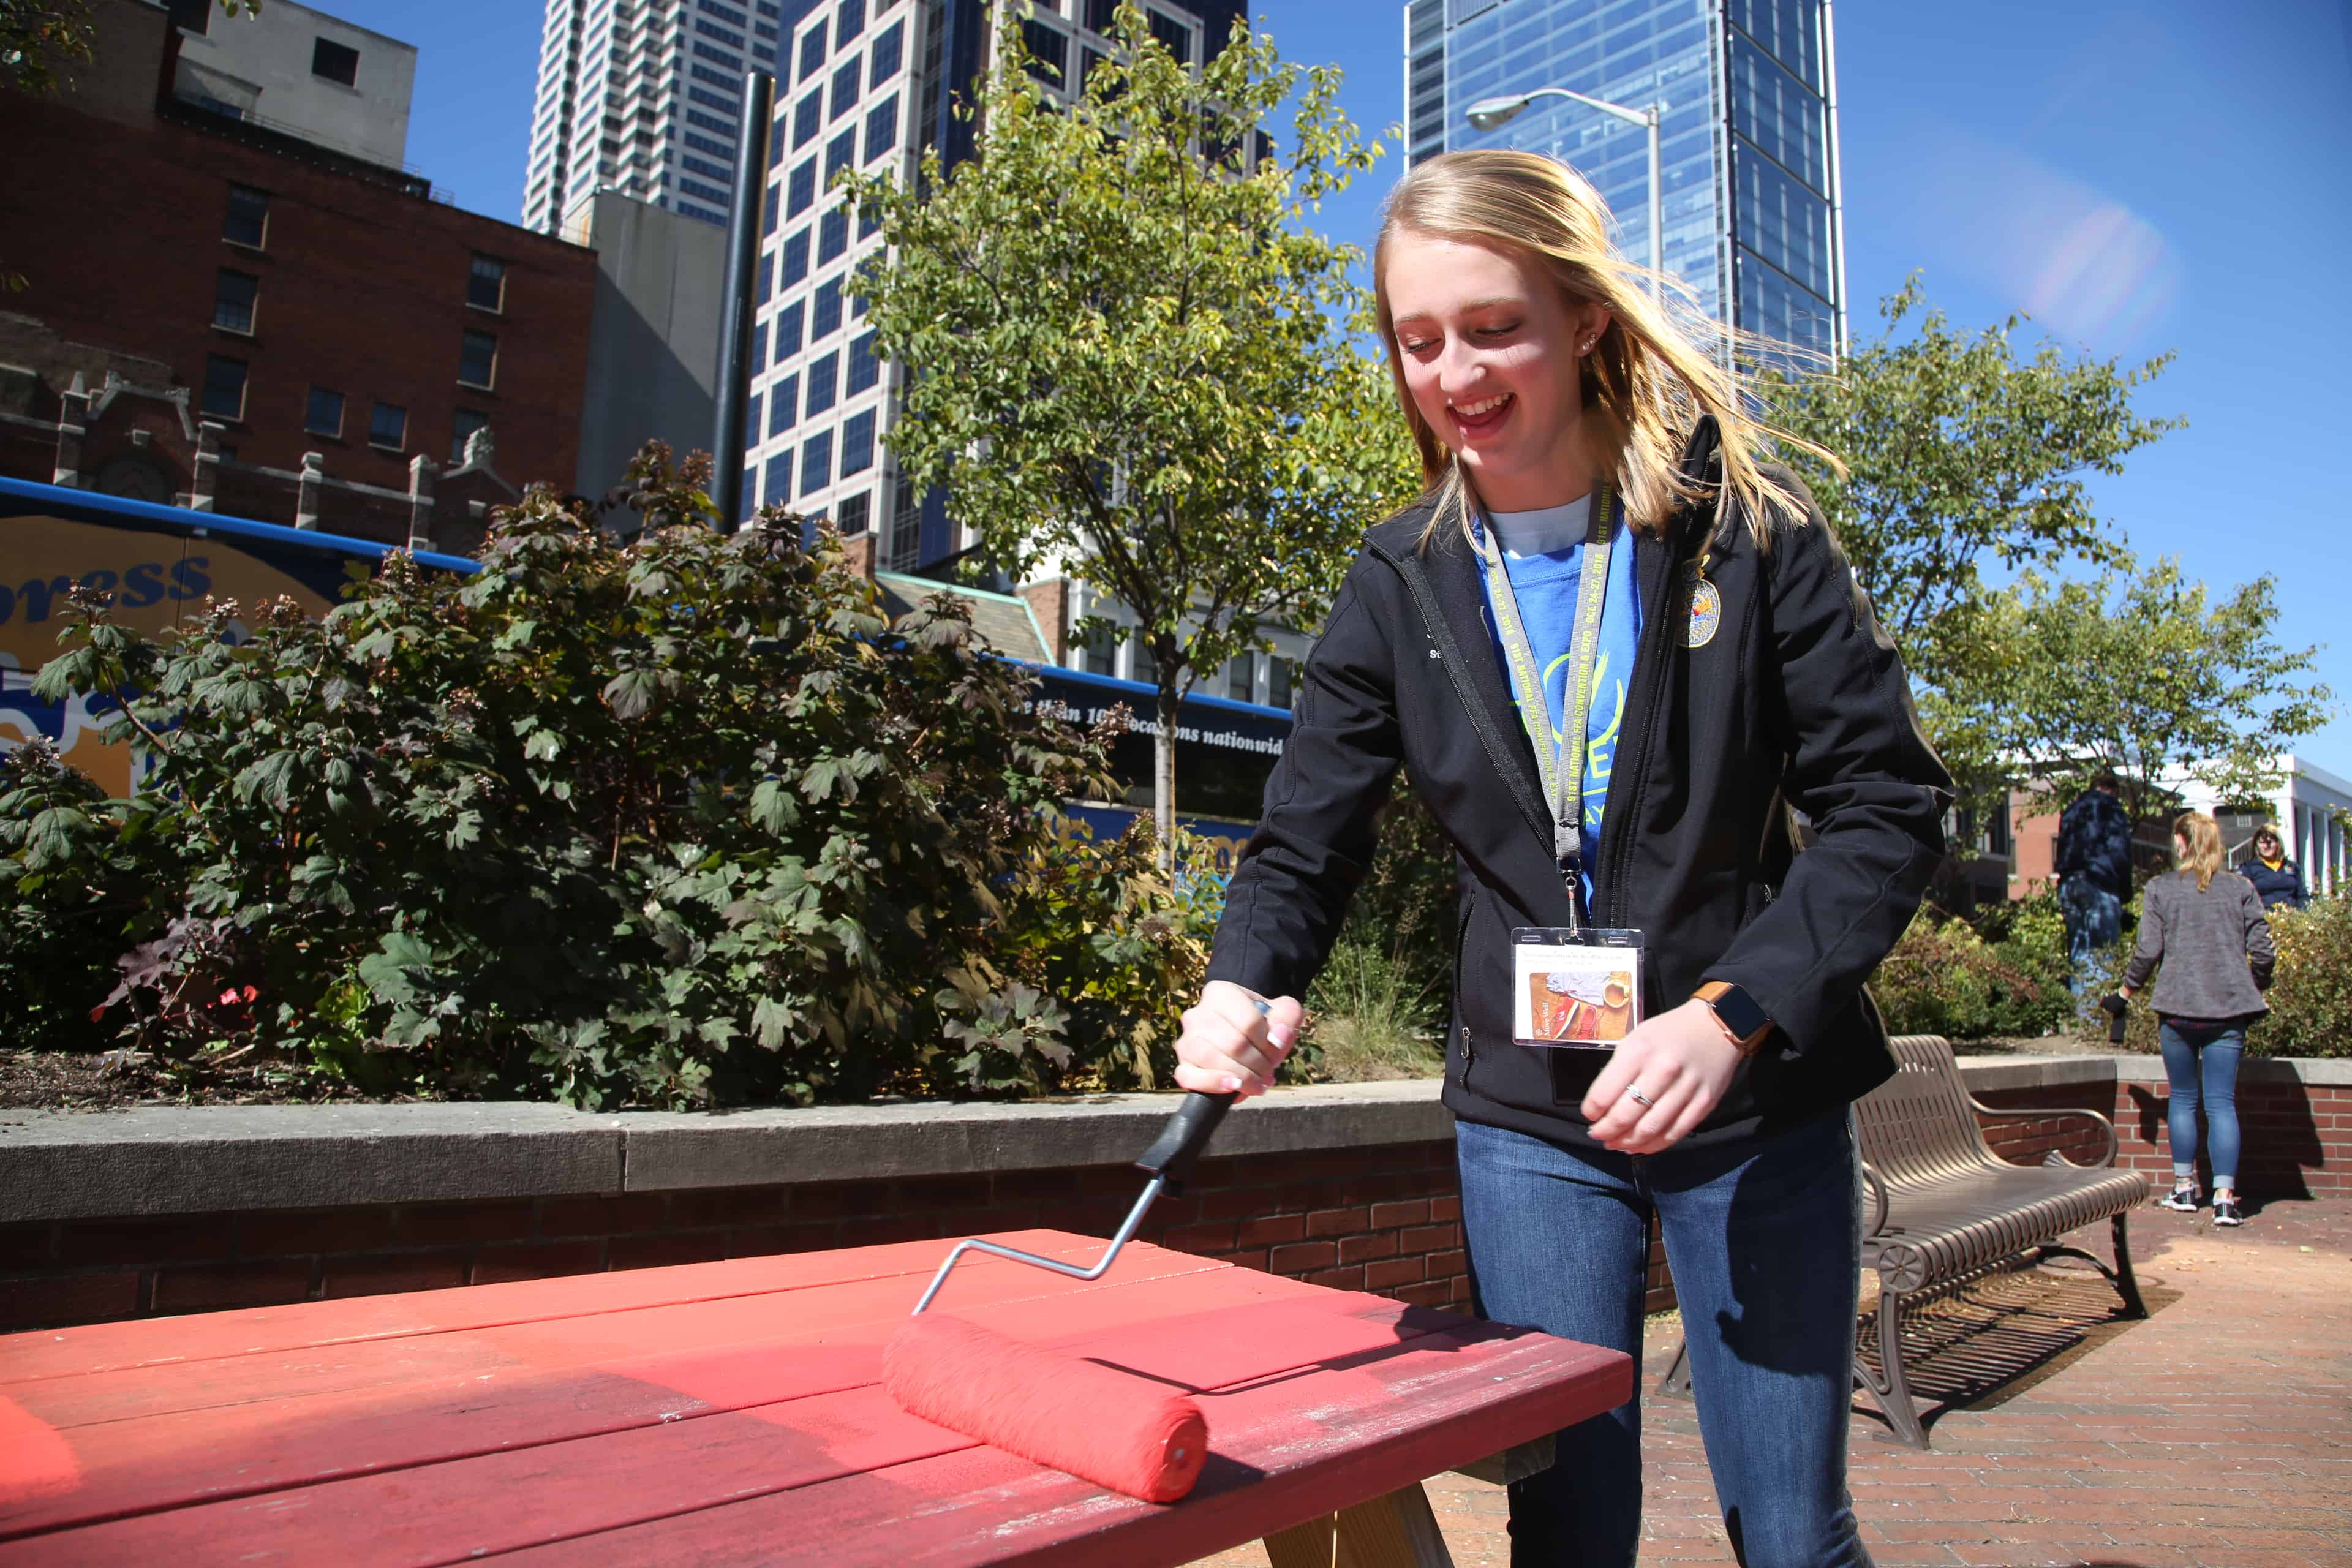 An FFA member participates in National Days of Service in Indianapolis.